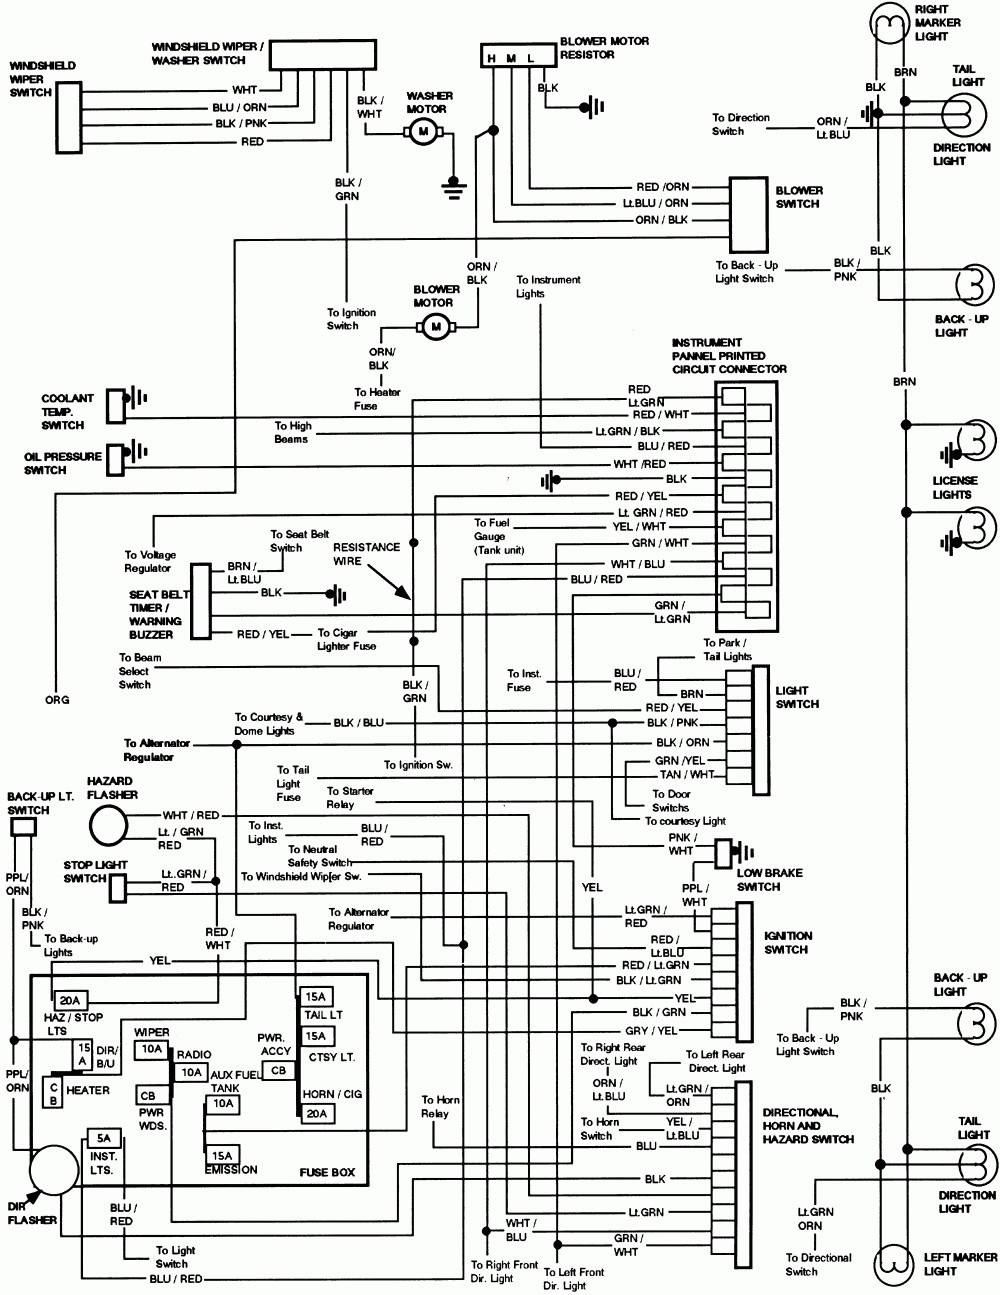 medium resolution of 2000 ford f 150 window wiring diagram wiring diagram detailed 2005 ford f 150 wiring